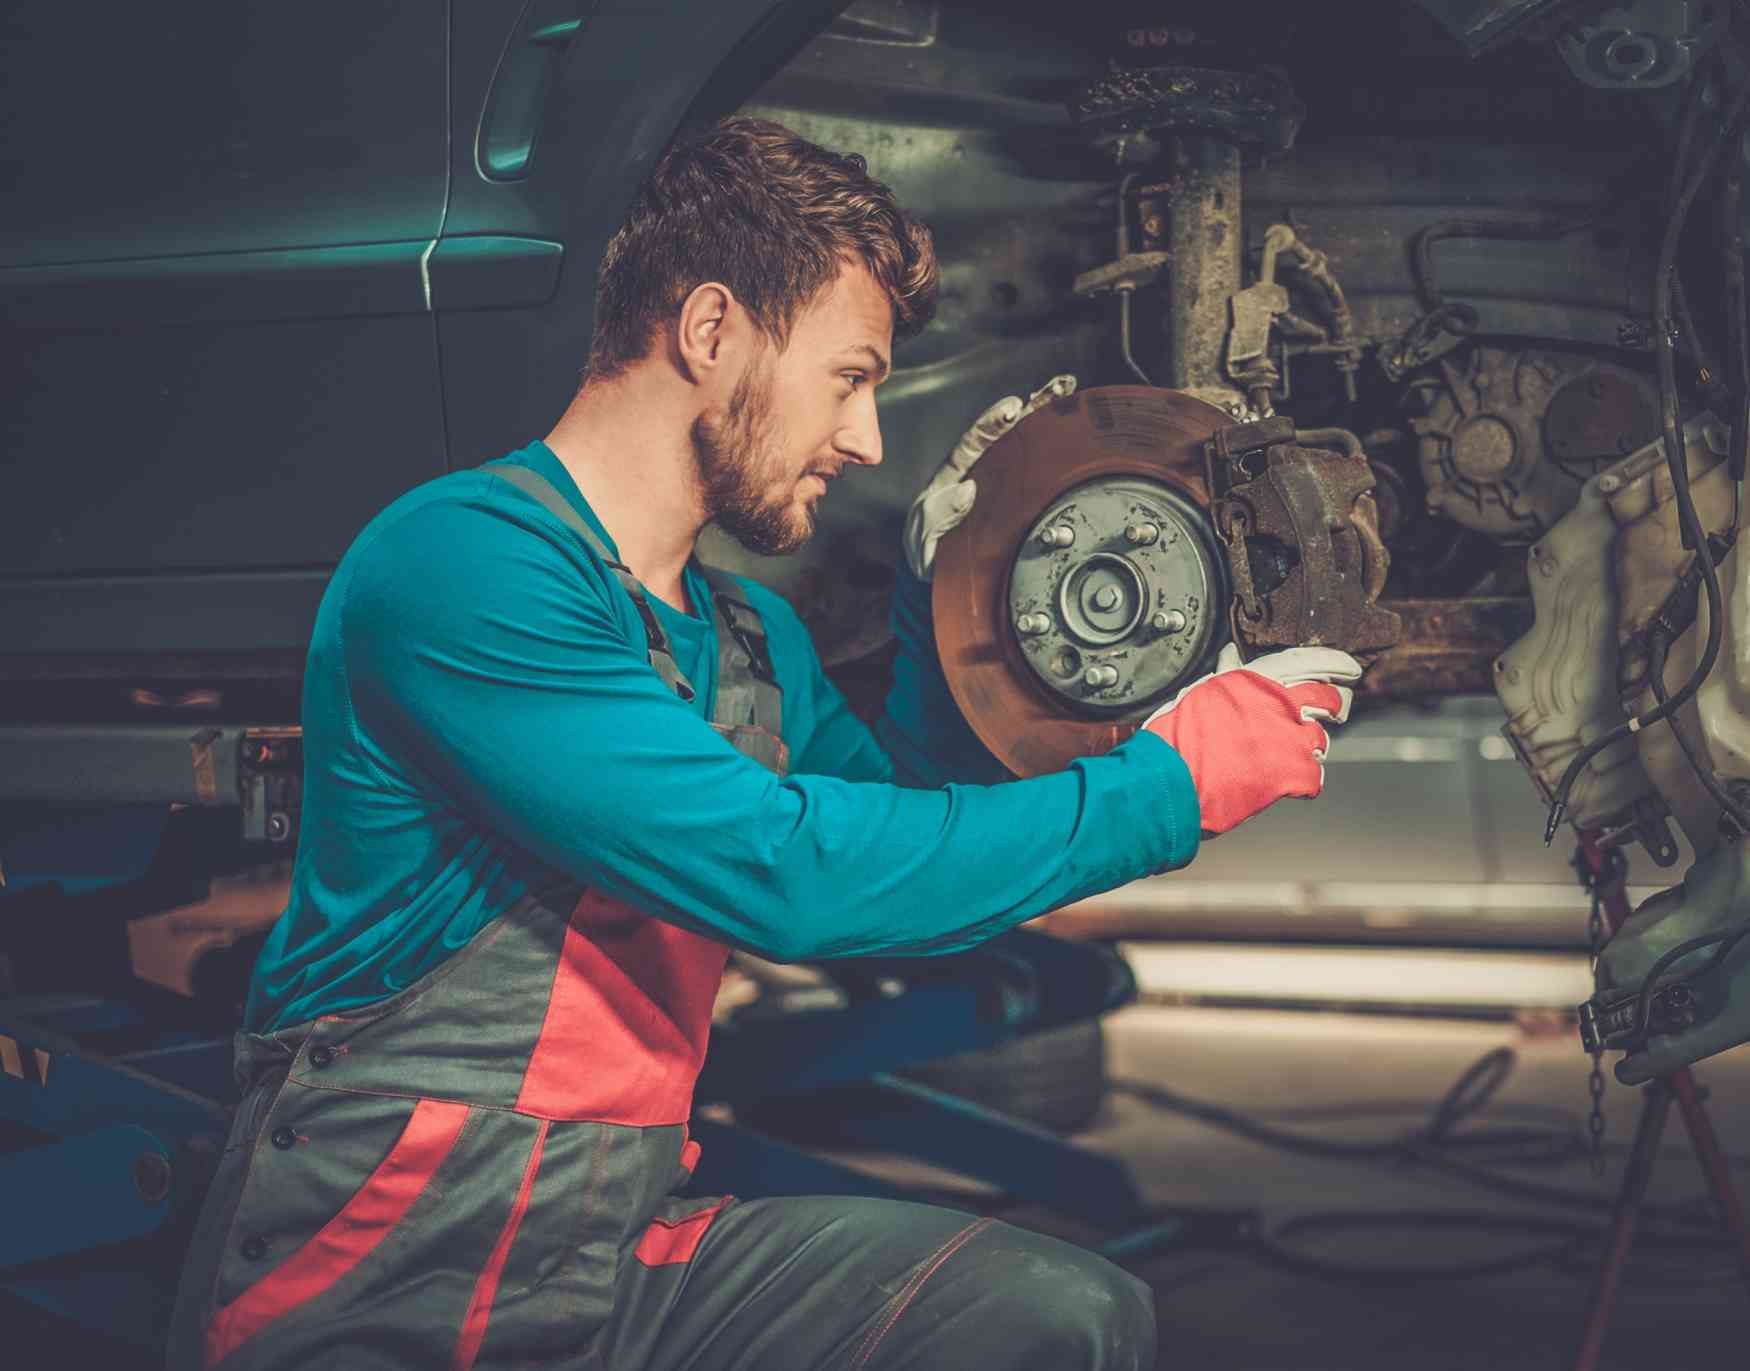 mechanic-checking-car-brake-system-in-a-workshop